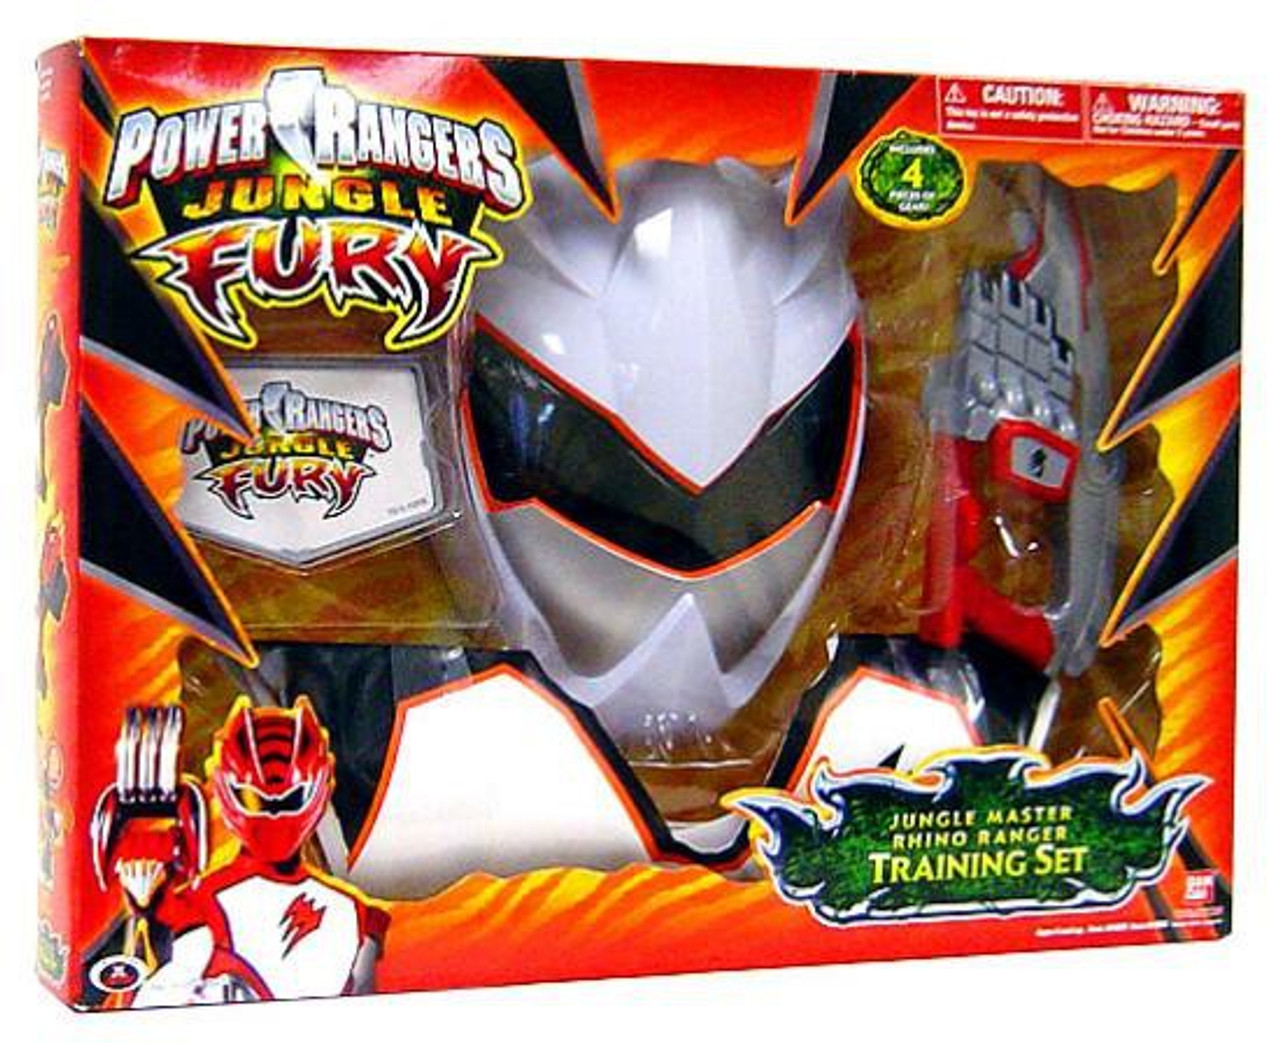 Power rangers jungle fury jungle master rhino ranger training set power rangers jungle fury jungle master rhino ranger training set roleplay toy voltagebd Choice Image